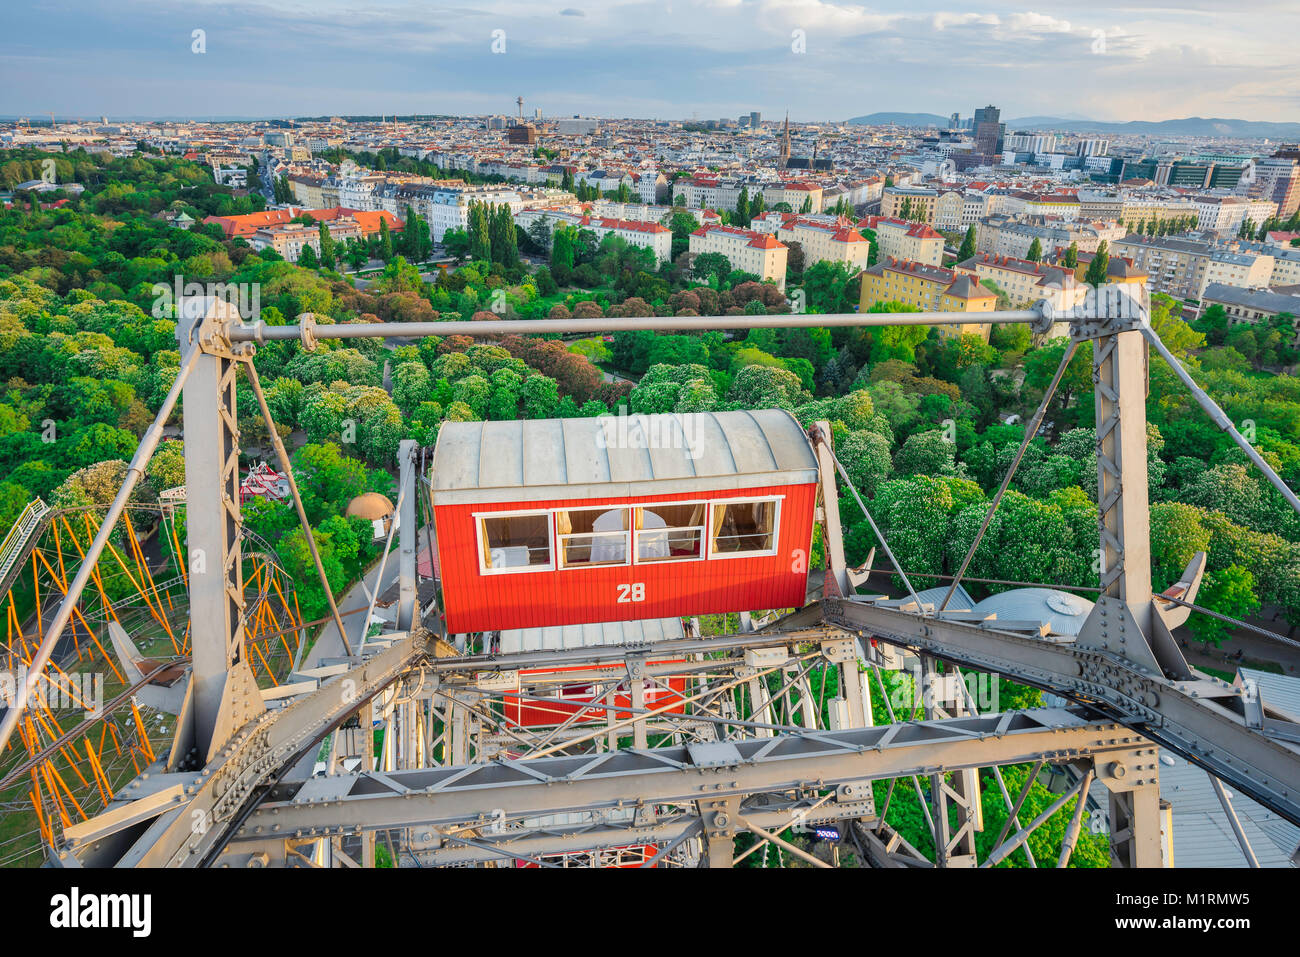 Vienna Prater Riesenrad, a view of the Prater park and Vienna cityscape from the Riesenrad ferris wheel, Austria. - Stock Image